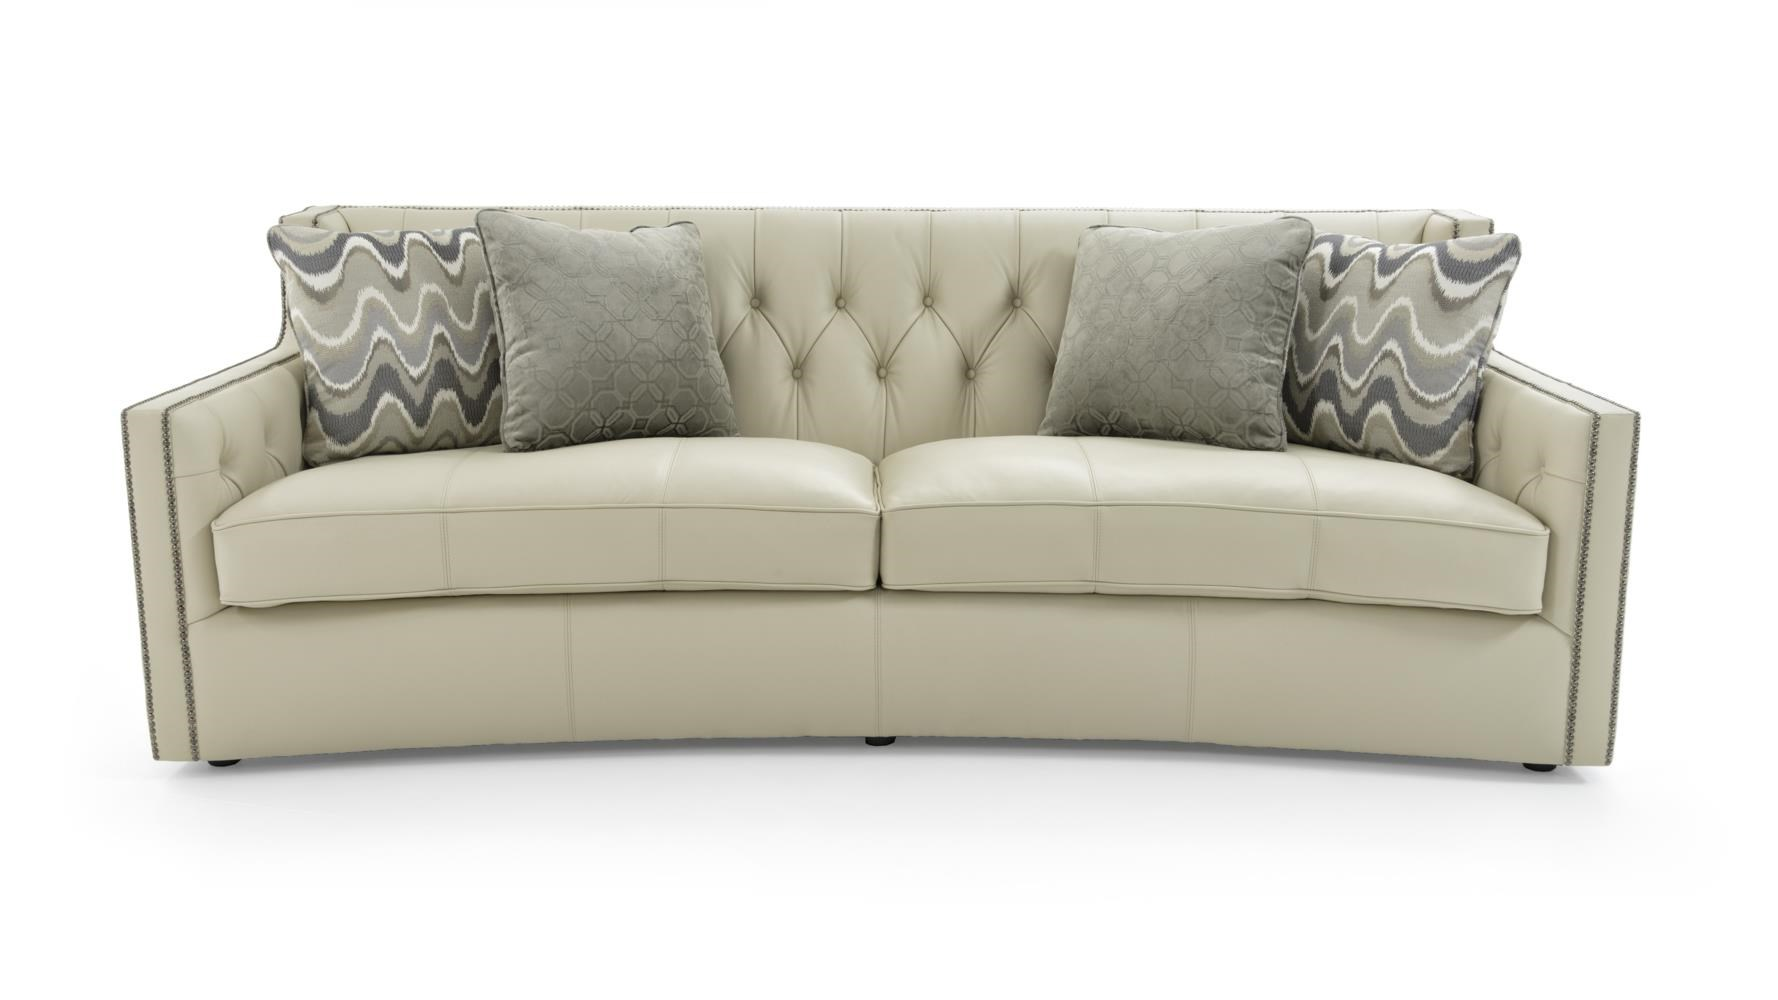 Bernhardt Candace 7277leo 206 200 Sofa With Transitional